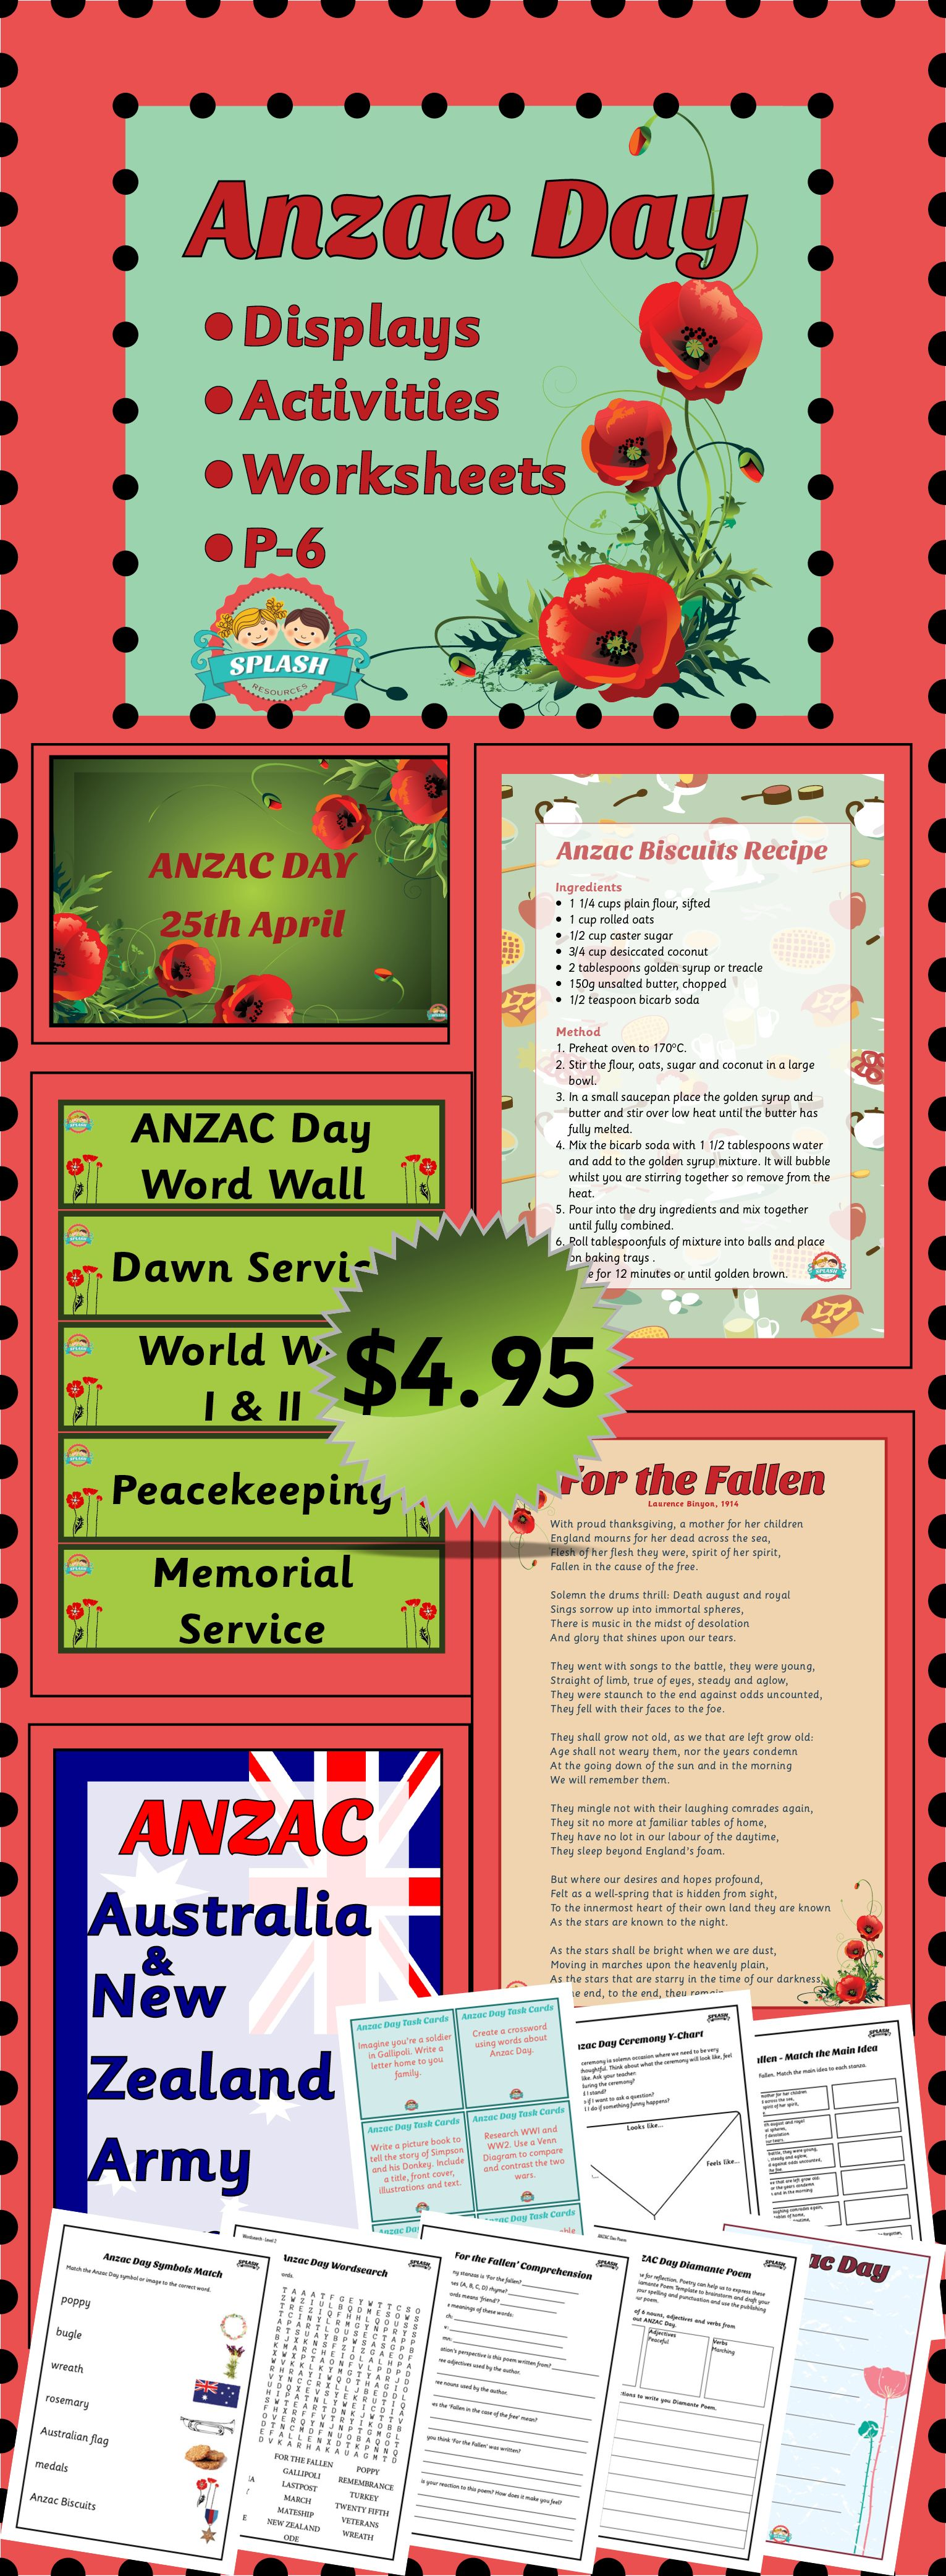 Anzac Day (25 April) posters, task cards, activities and worksheets for Year 1, 2, 3, 4, 5 and 6. $4.95 #splashresources #themebook #australia #holidays #remembranceday #history #socialstudies #australiancurriculum #acara #LBH006 #ACHHK003 #ACHHK063 #ACHHS066